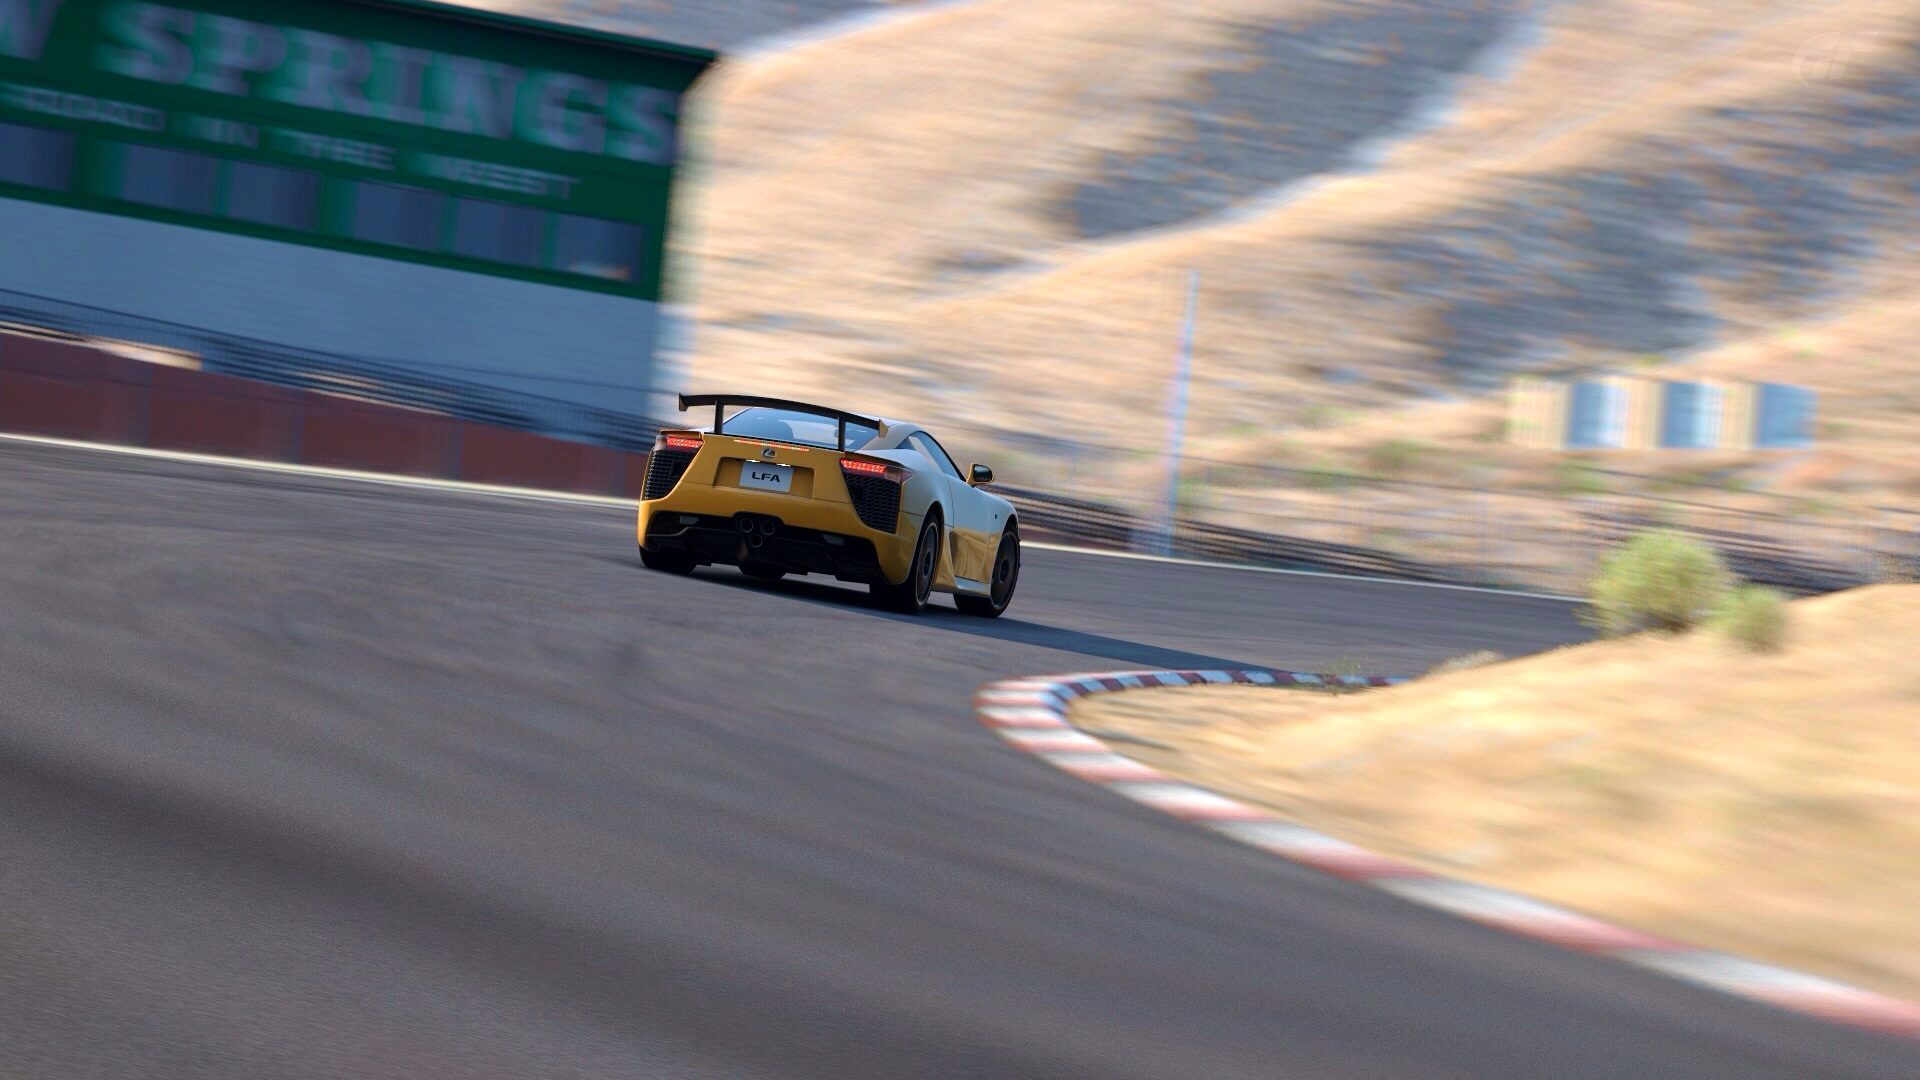 LFA Nurburgring Ed. Willow Springs (2).jpg